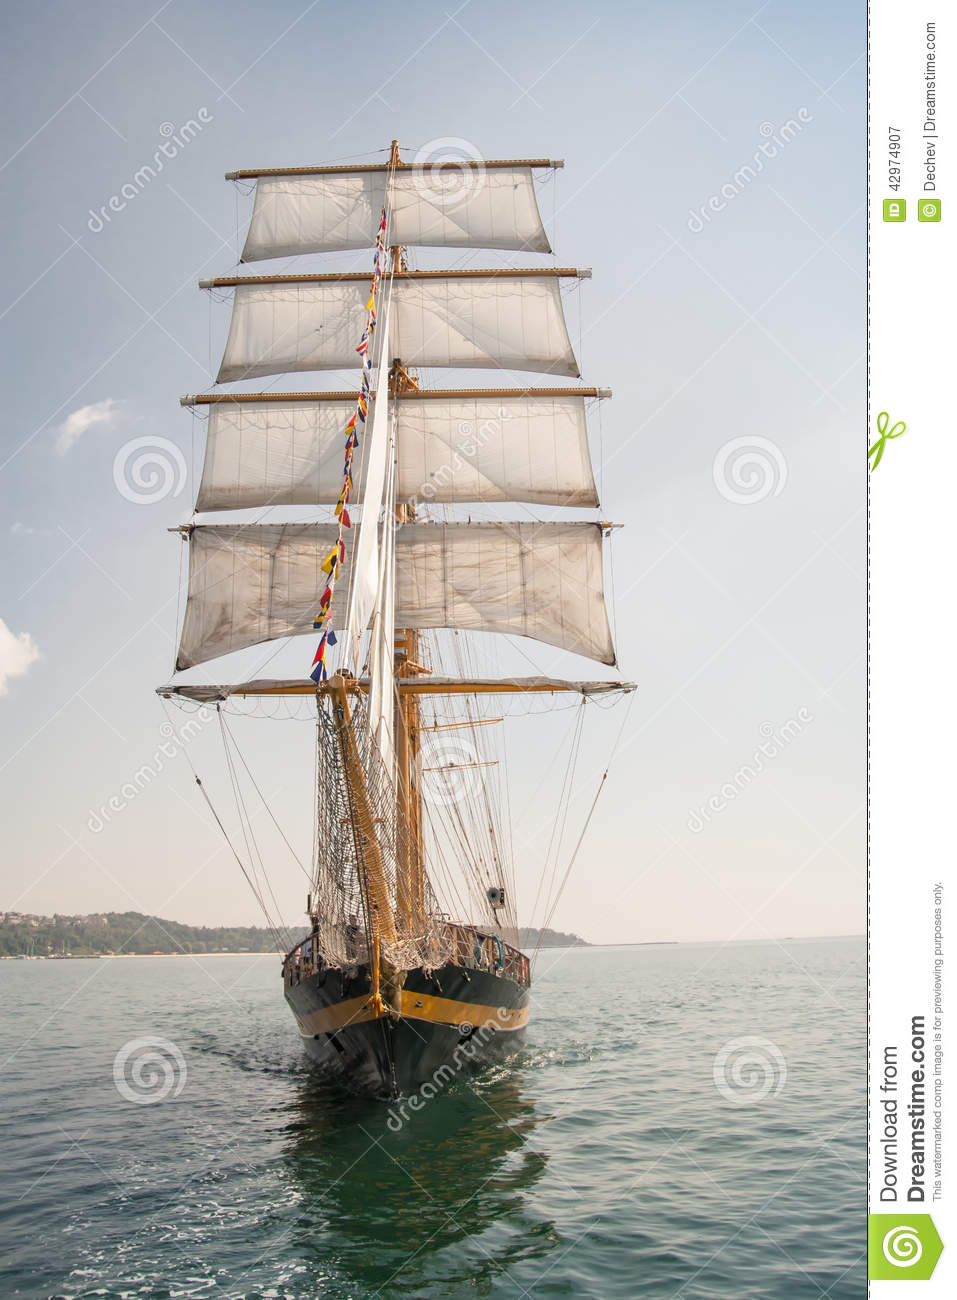 Old Ship, Sailing In The Sea Stock Image - Image of travel ...